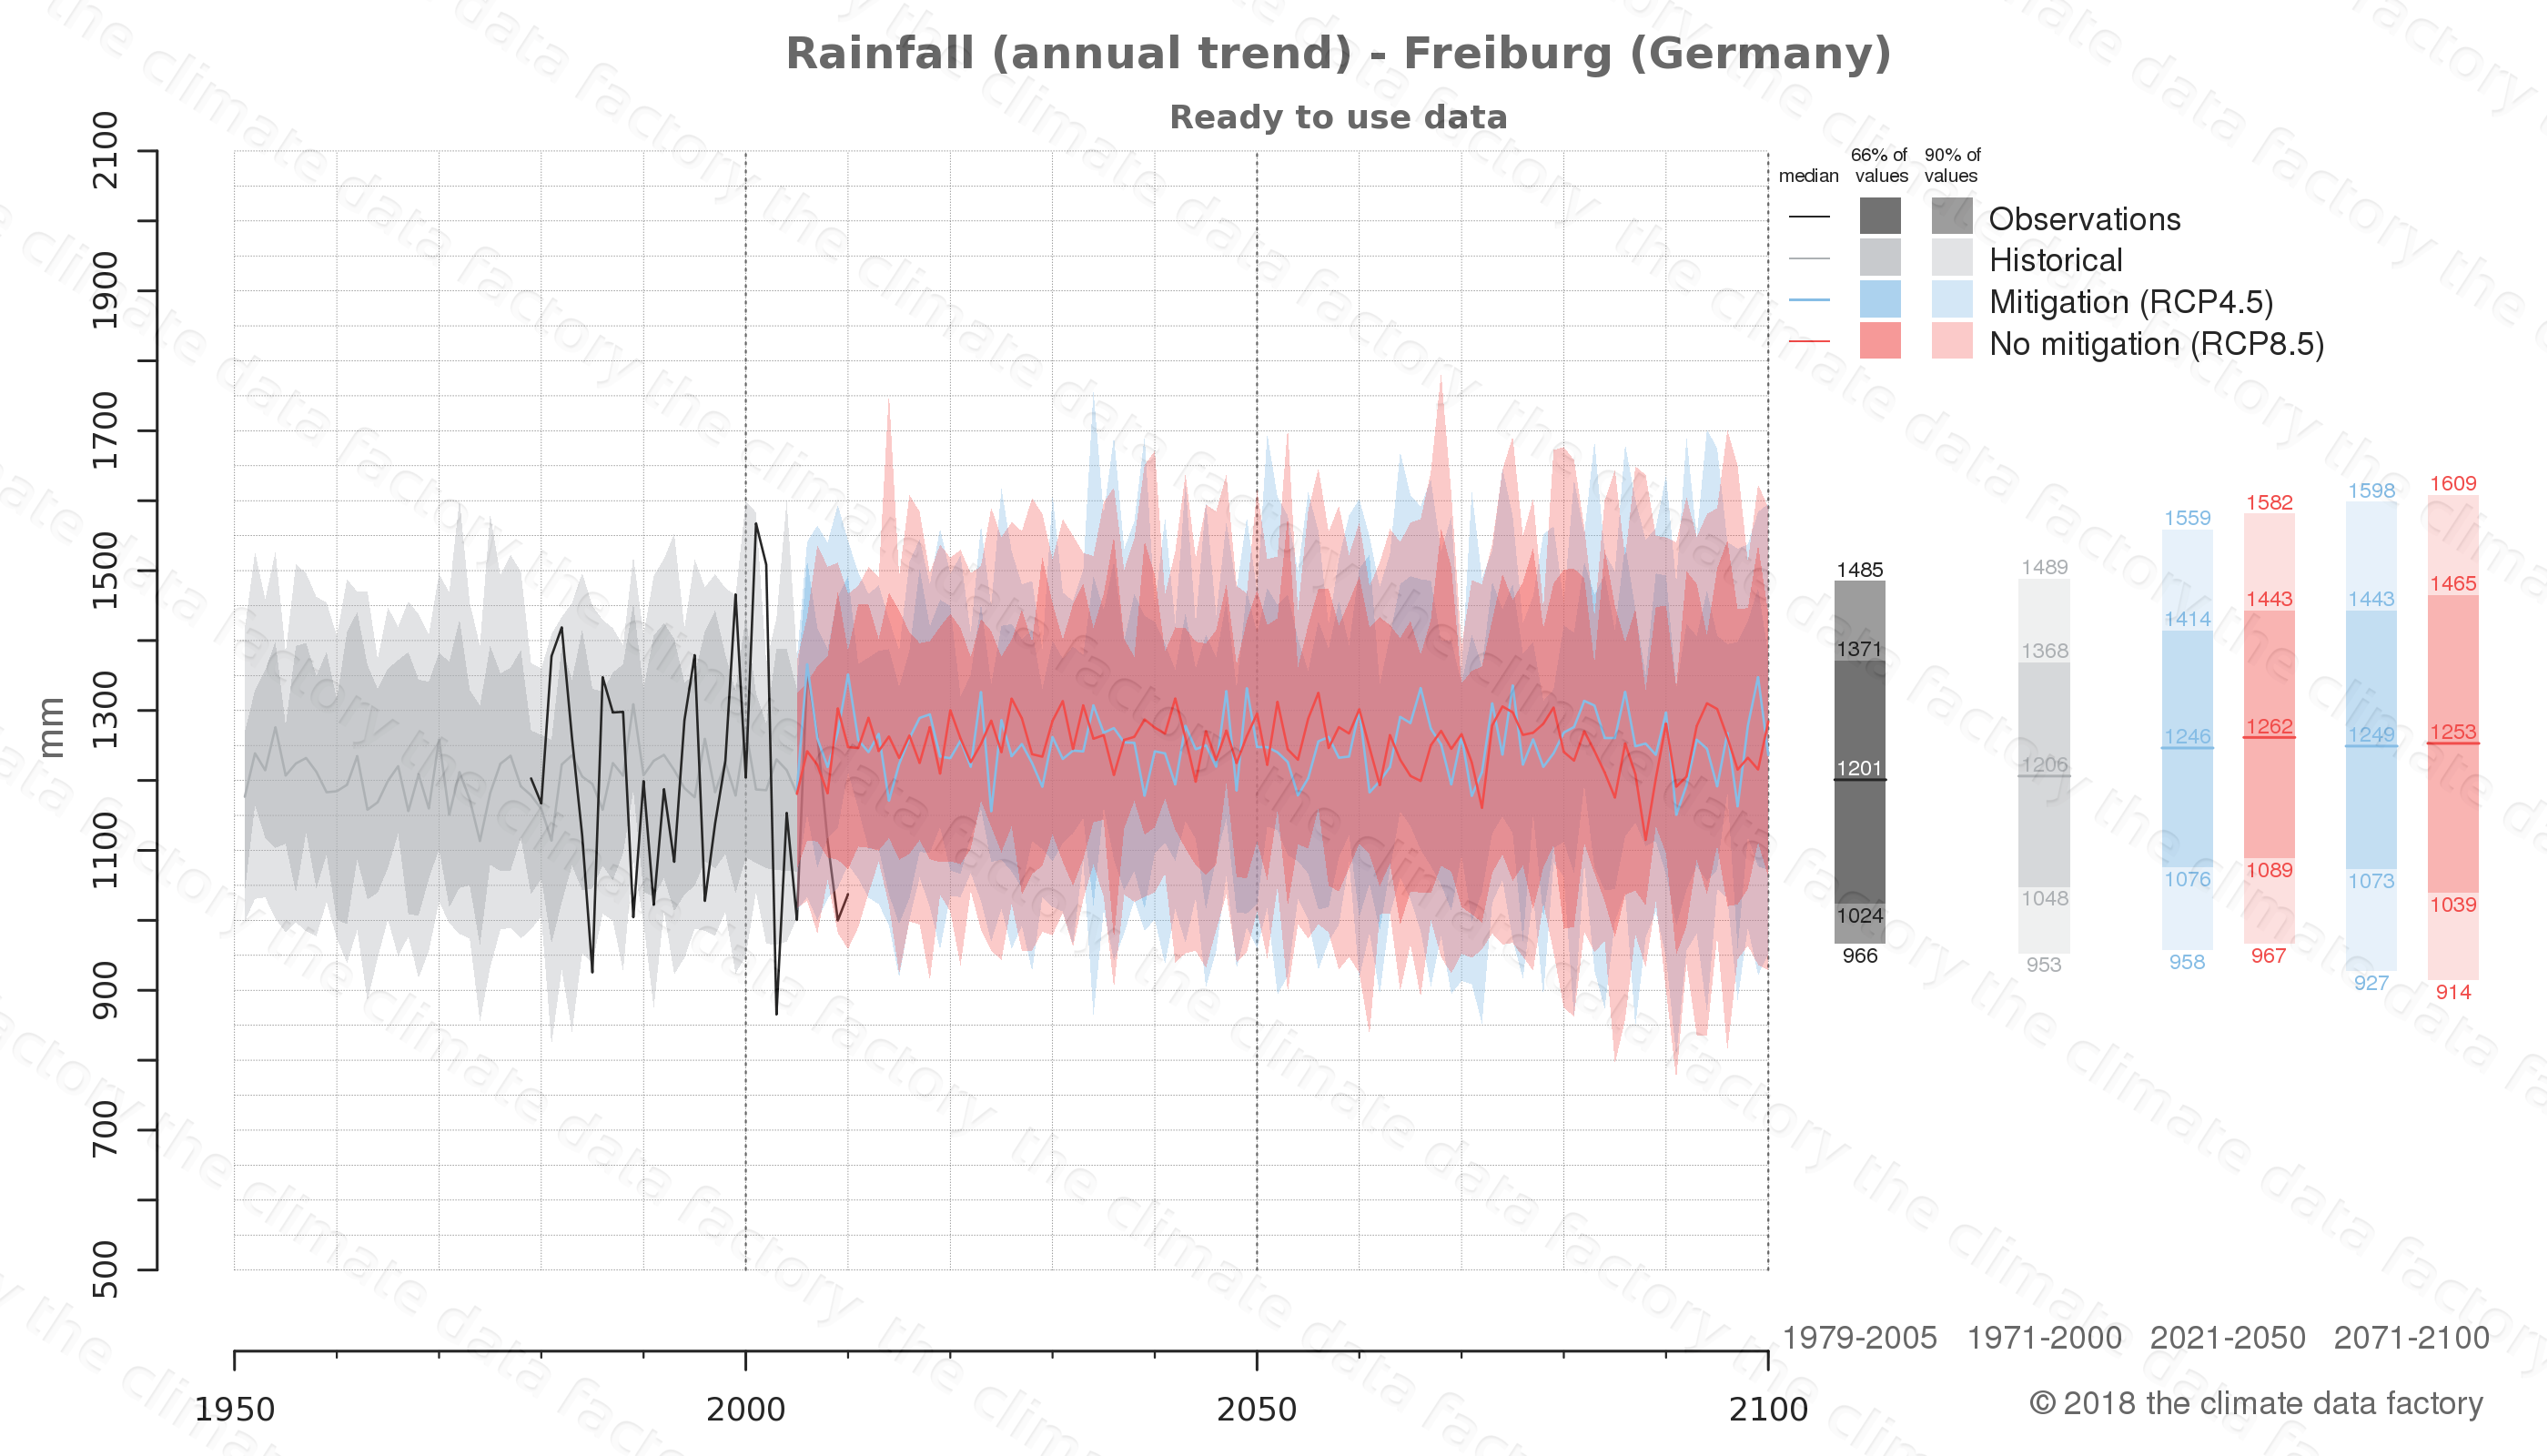 climate change data policy adaptation climate graph city data rainfall freiburg germany